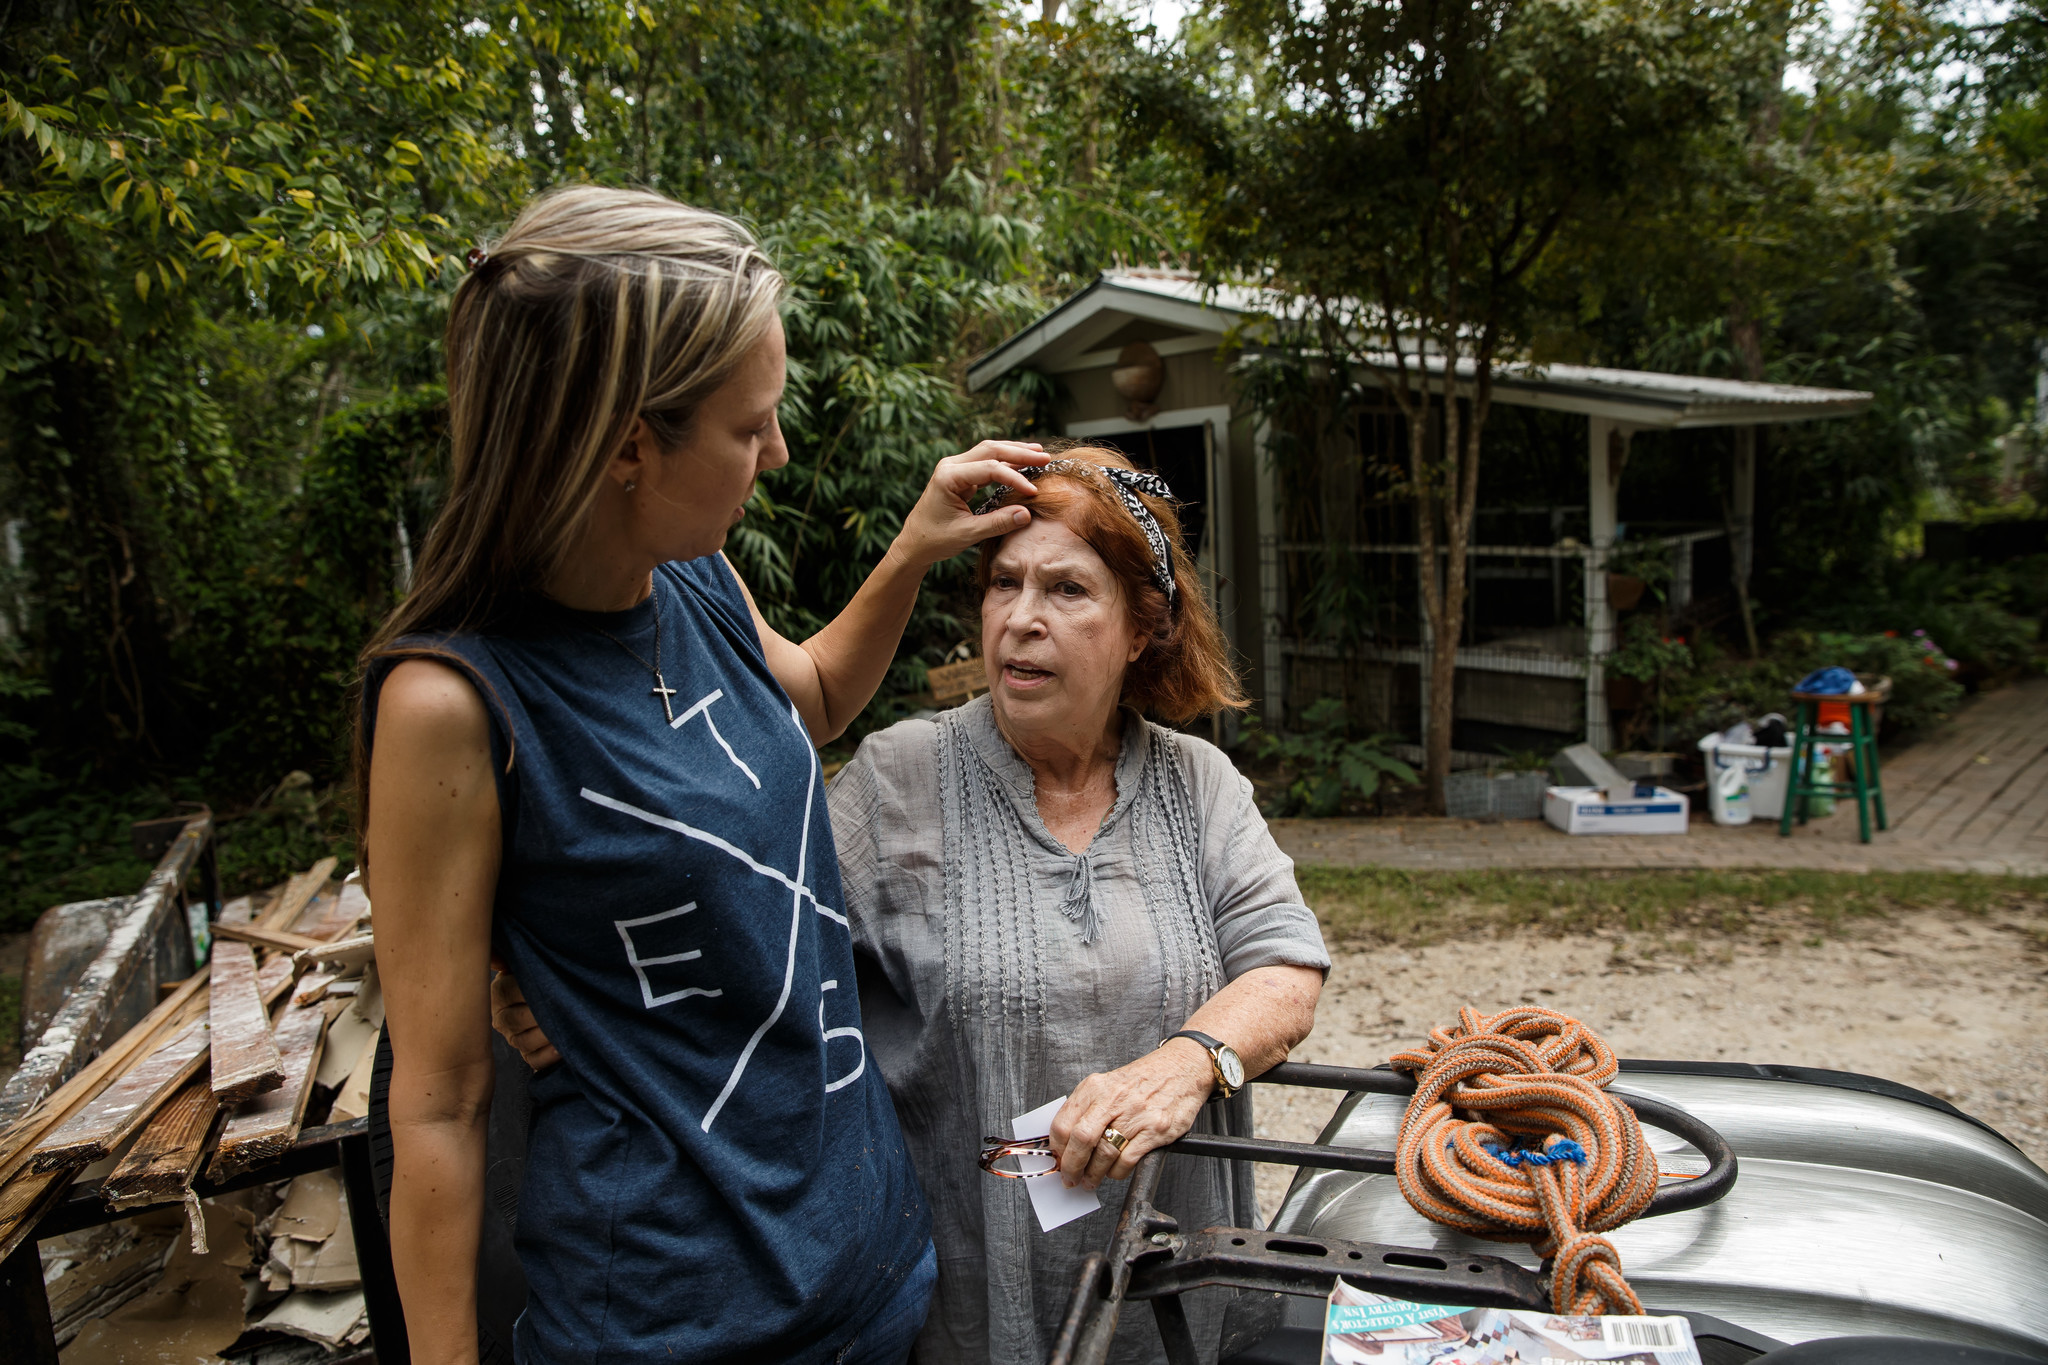 Jenny Sanders fixes Sue Bown's hair as they watch Sue's car get towed away after it was damaged by floodwaters.